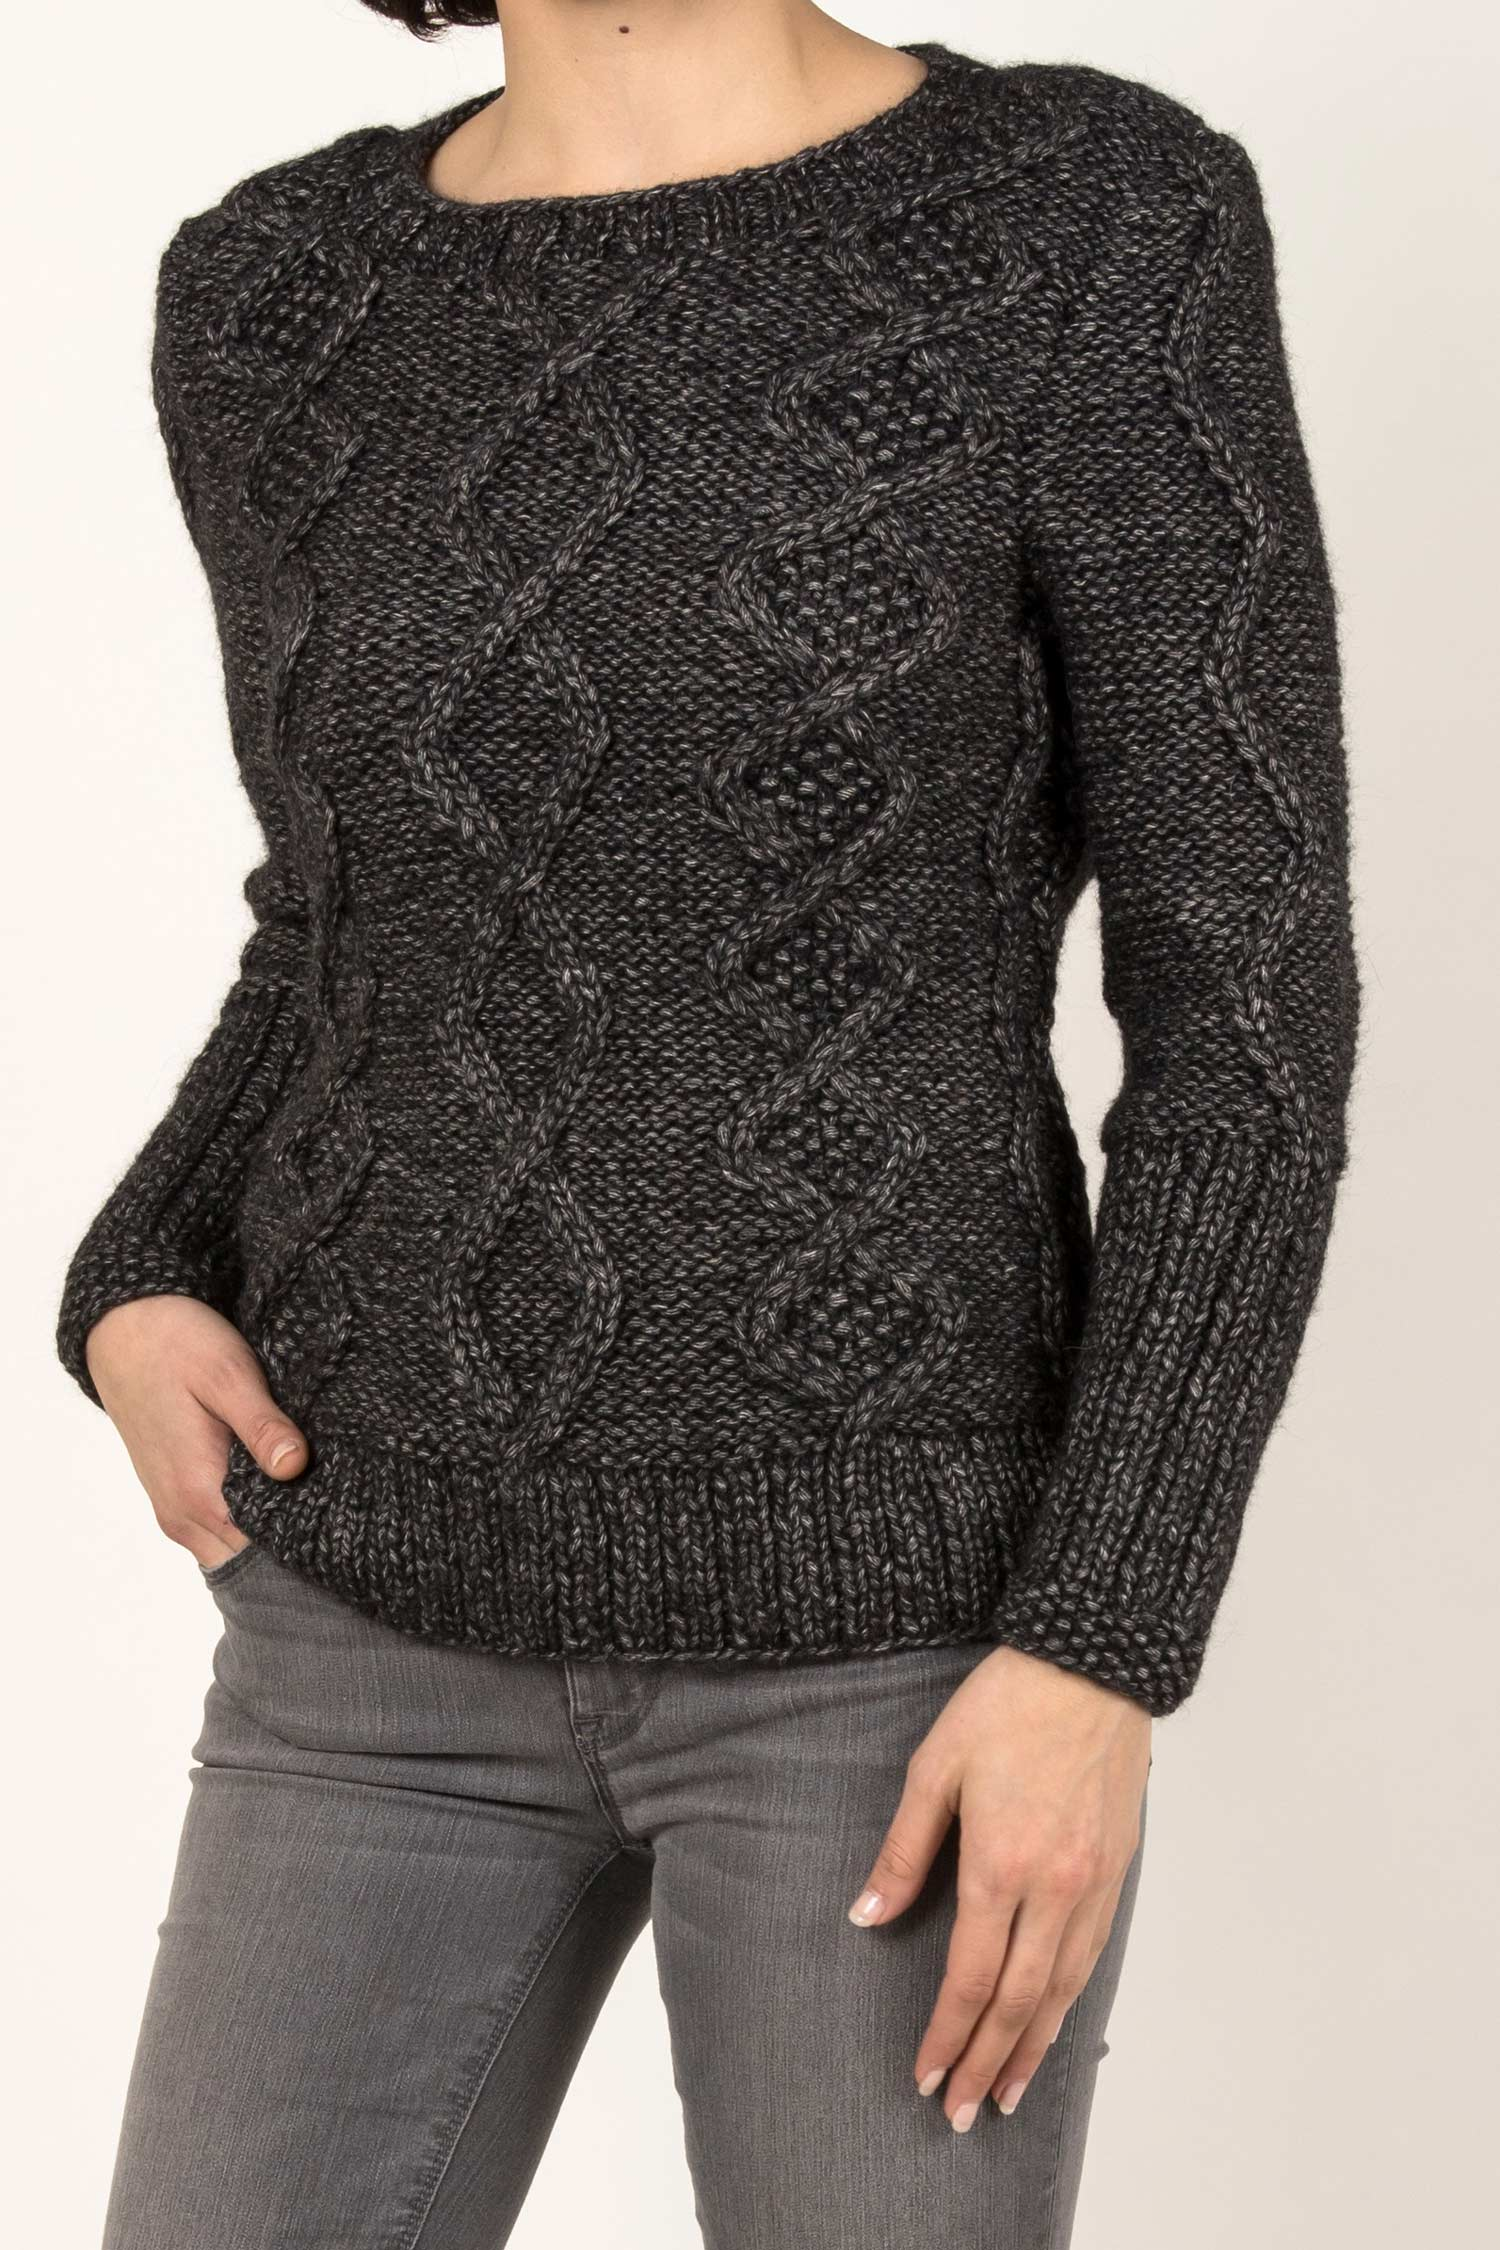 Chunky Cable Sweater - Indigenous